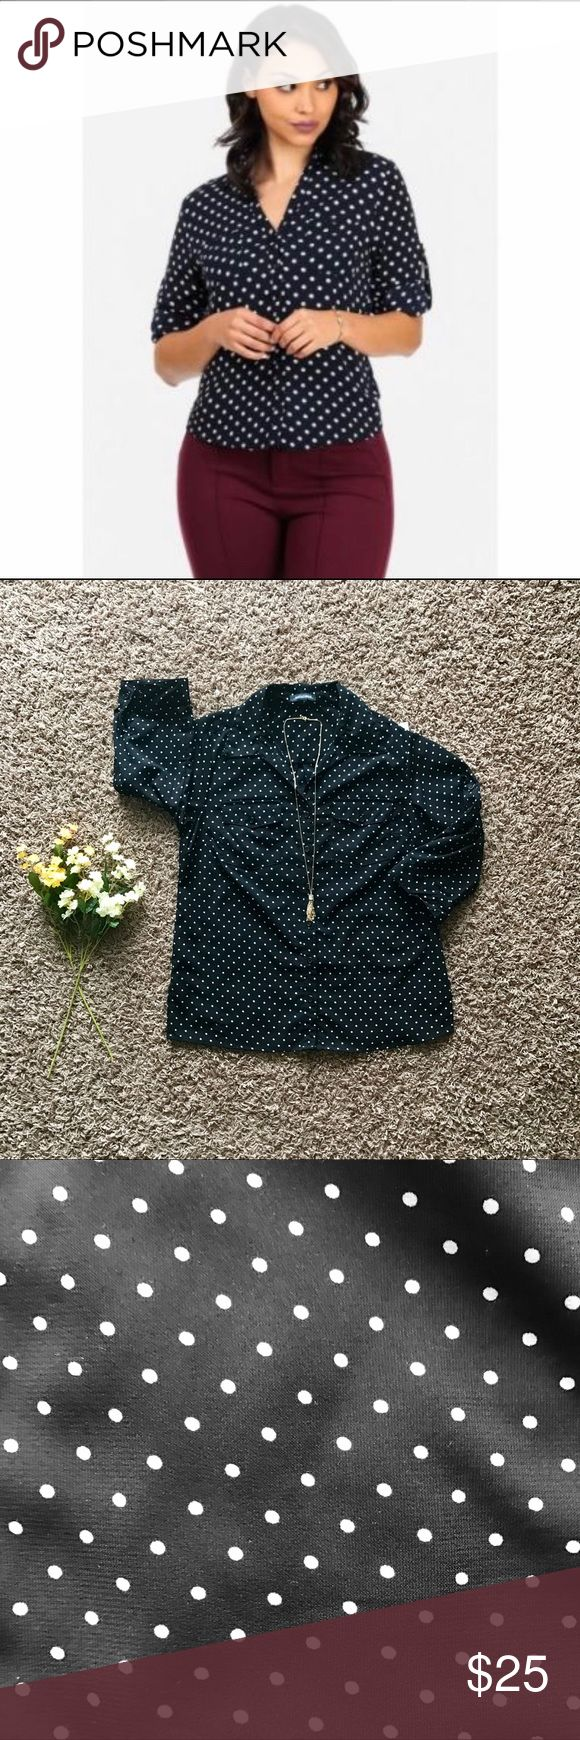 Polka dot button down shirt Your classic polka dot button down shirt. This piece is extremely comfortable and flowy, perfect for the upcoming seasons and very easily worn with any outfit! A must have ladies! Notations Tops Button Down Shirts